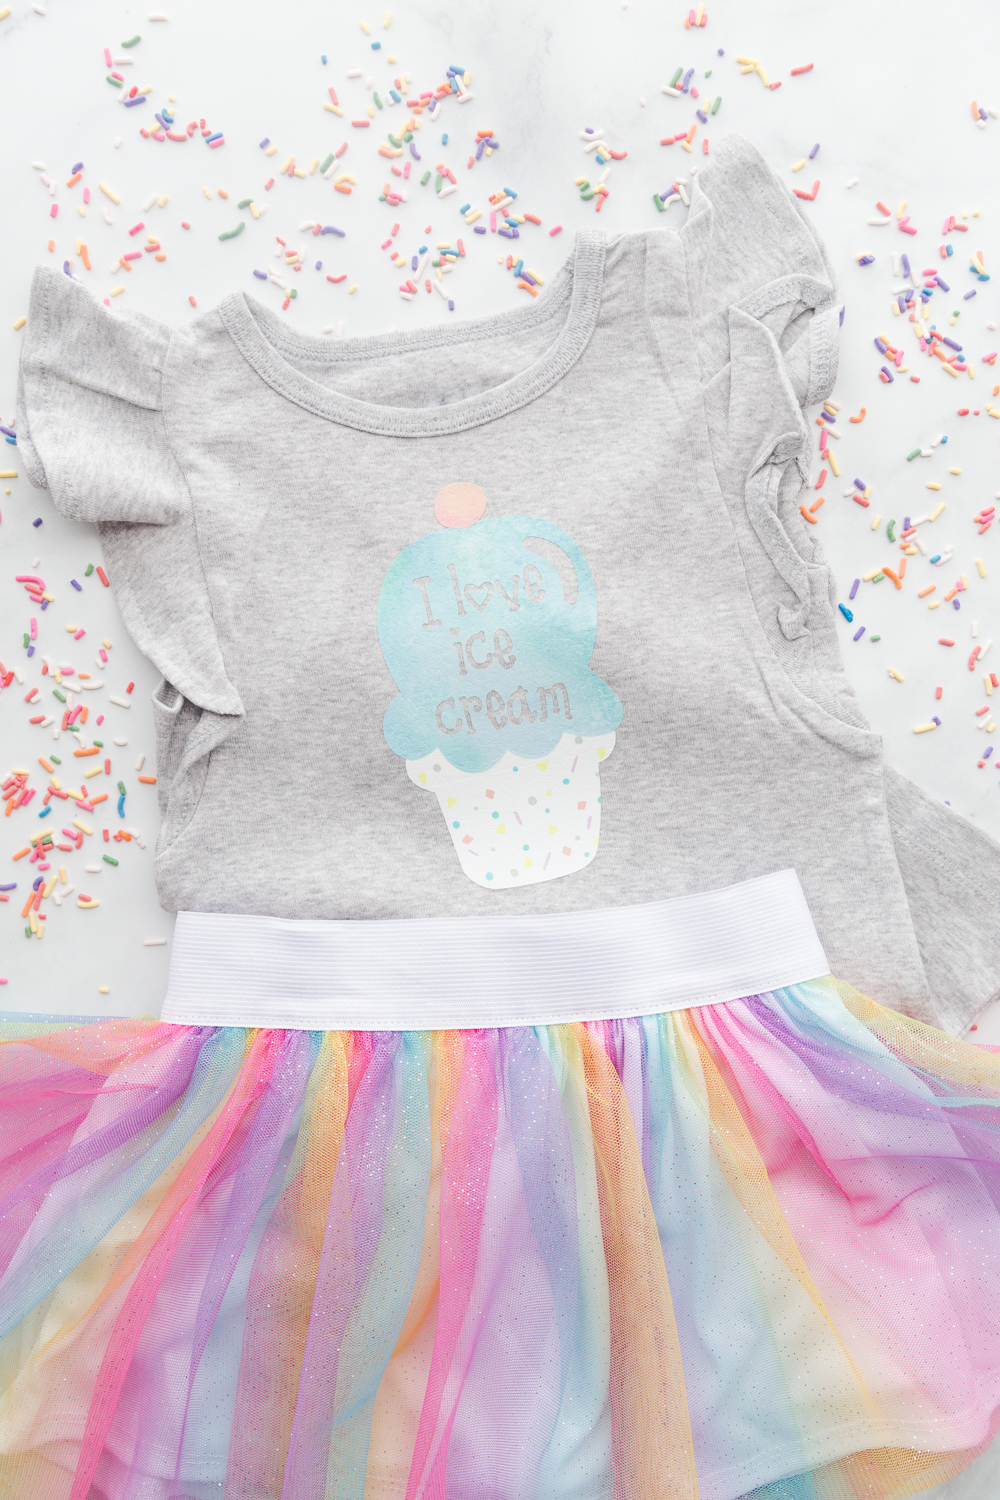 I Love Ice Cream Toddler Shirt With Cricut Patterned Iron